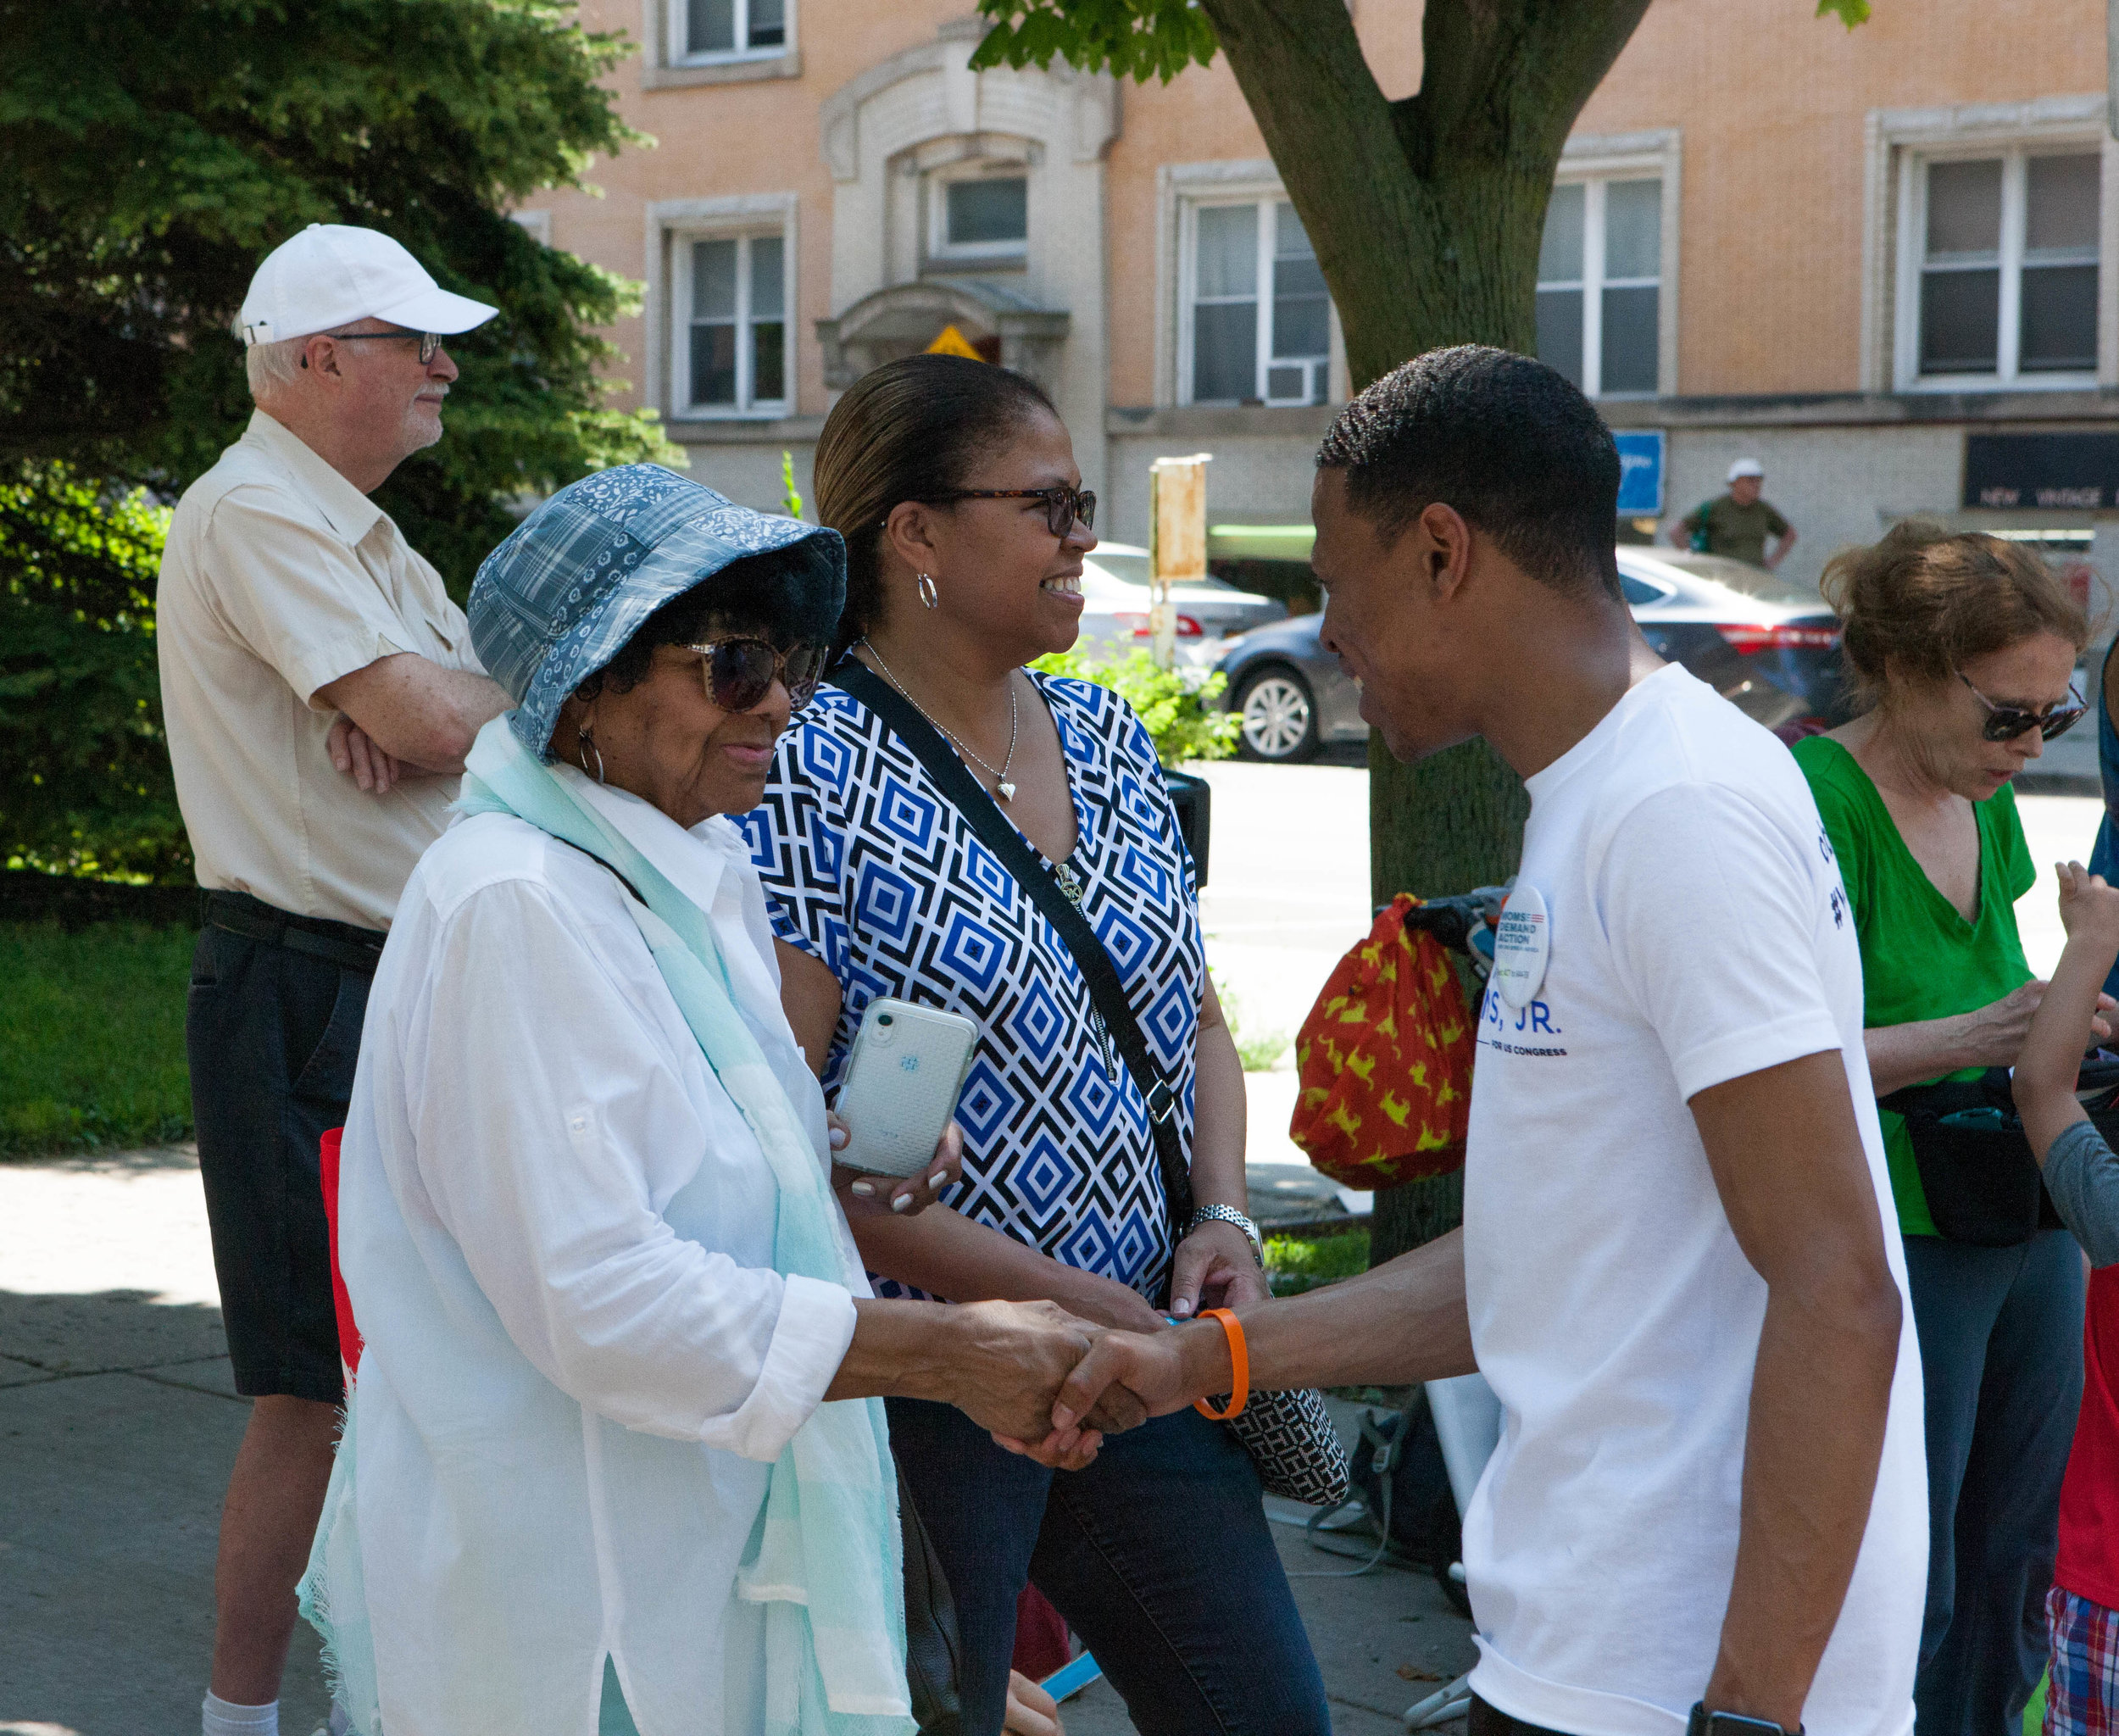 Robert shakes the hand of an elderly woman at the 4th on 53rd Parade.